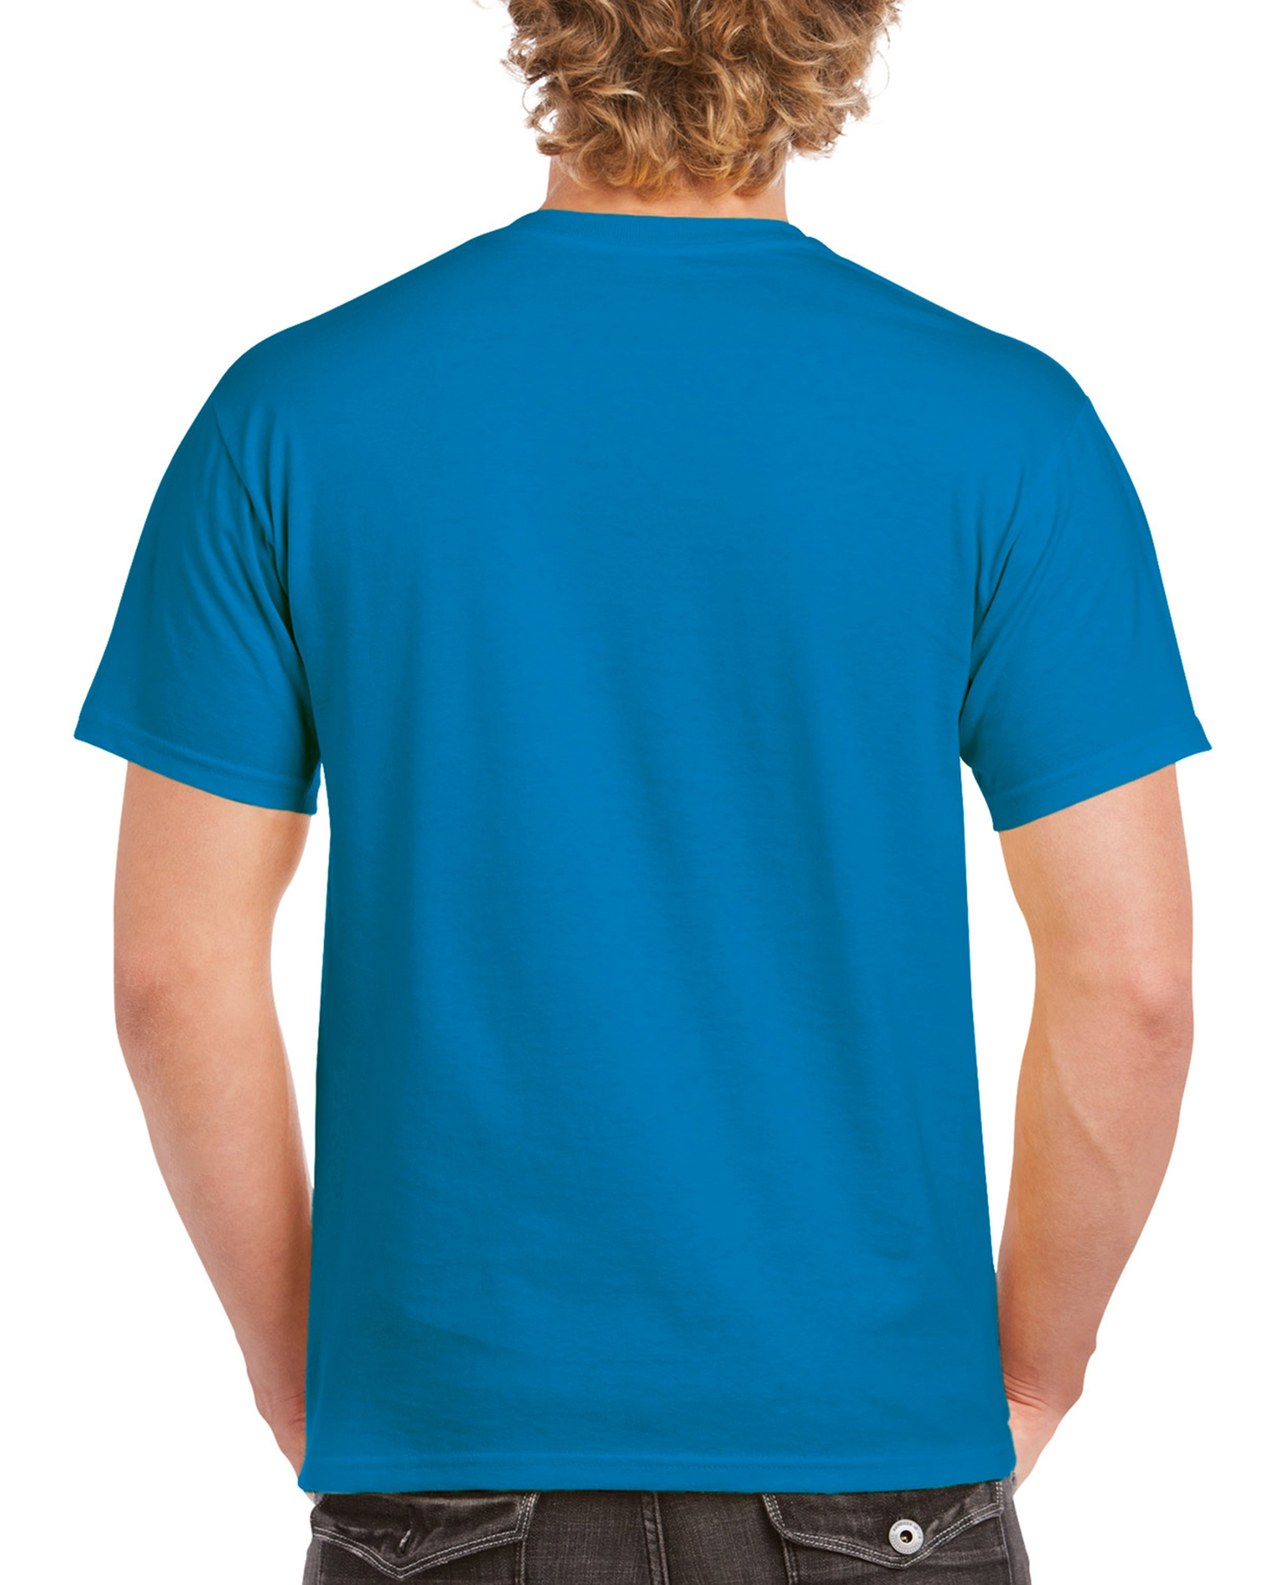 933822e1c5ec 2000 | Gildan® Ultra Cotton® | 6.0 oz/yd² | Adult T-Shirt | Gildan